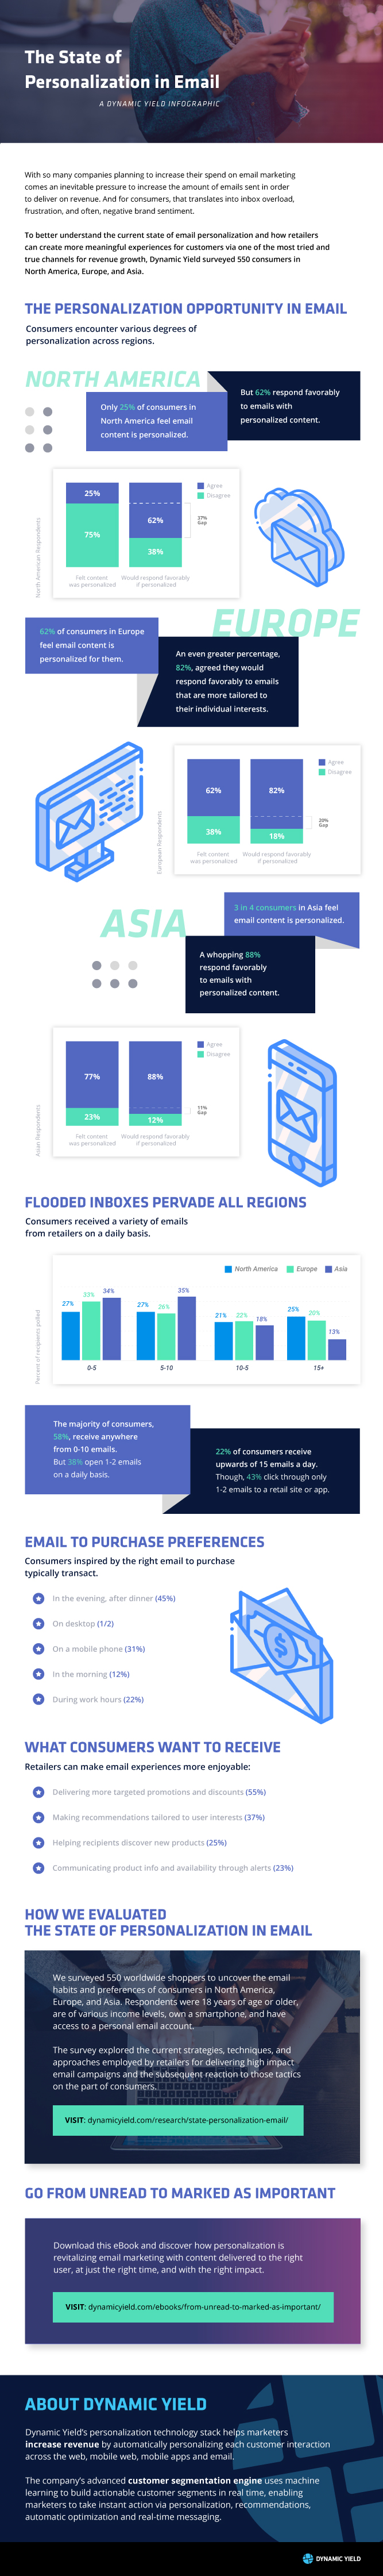 Benchmarking The State of Personalization in Email